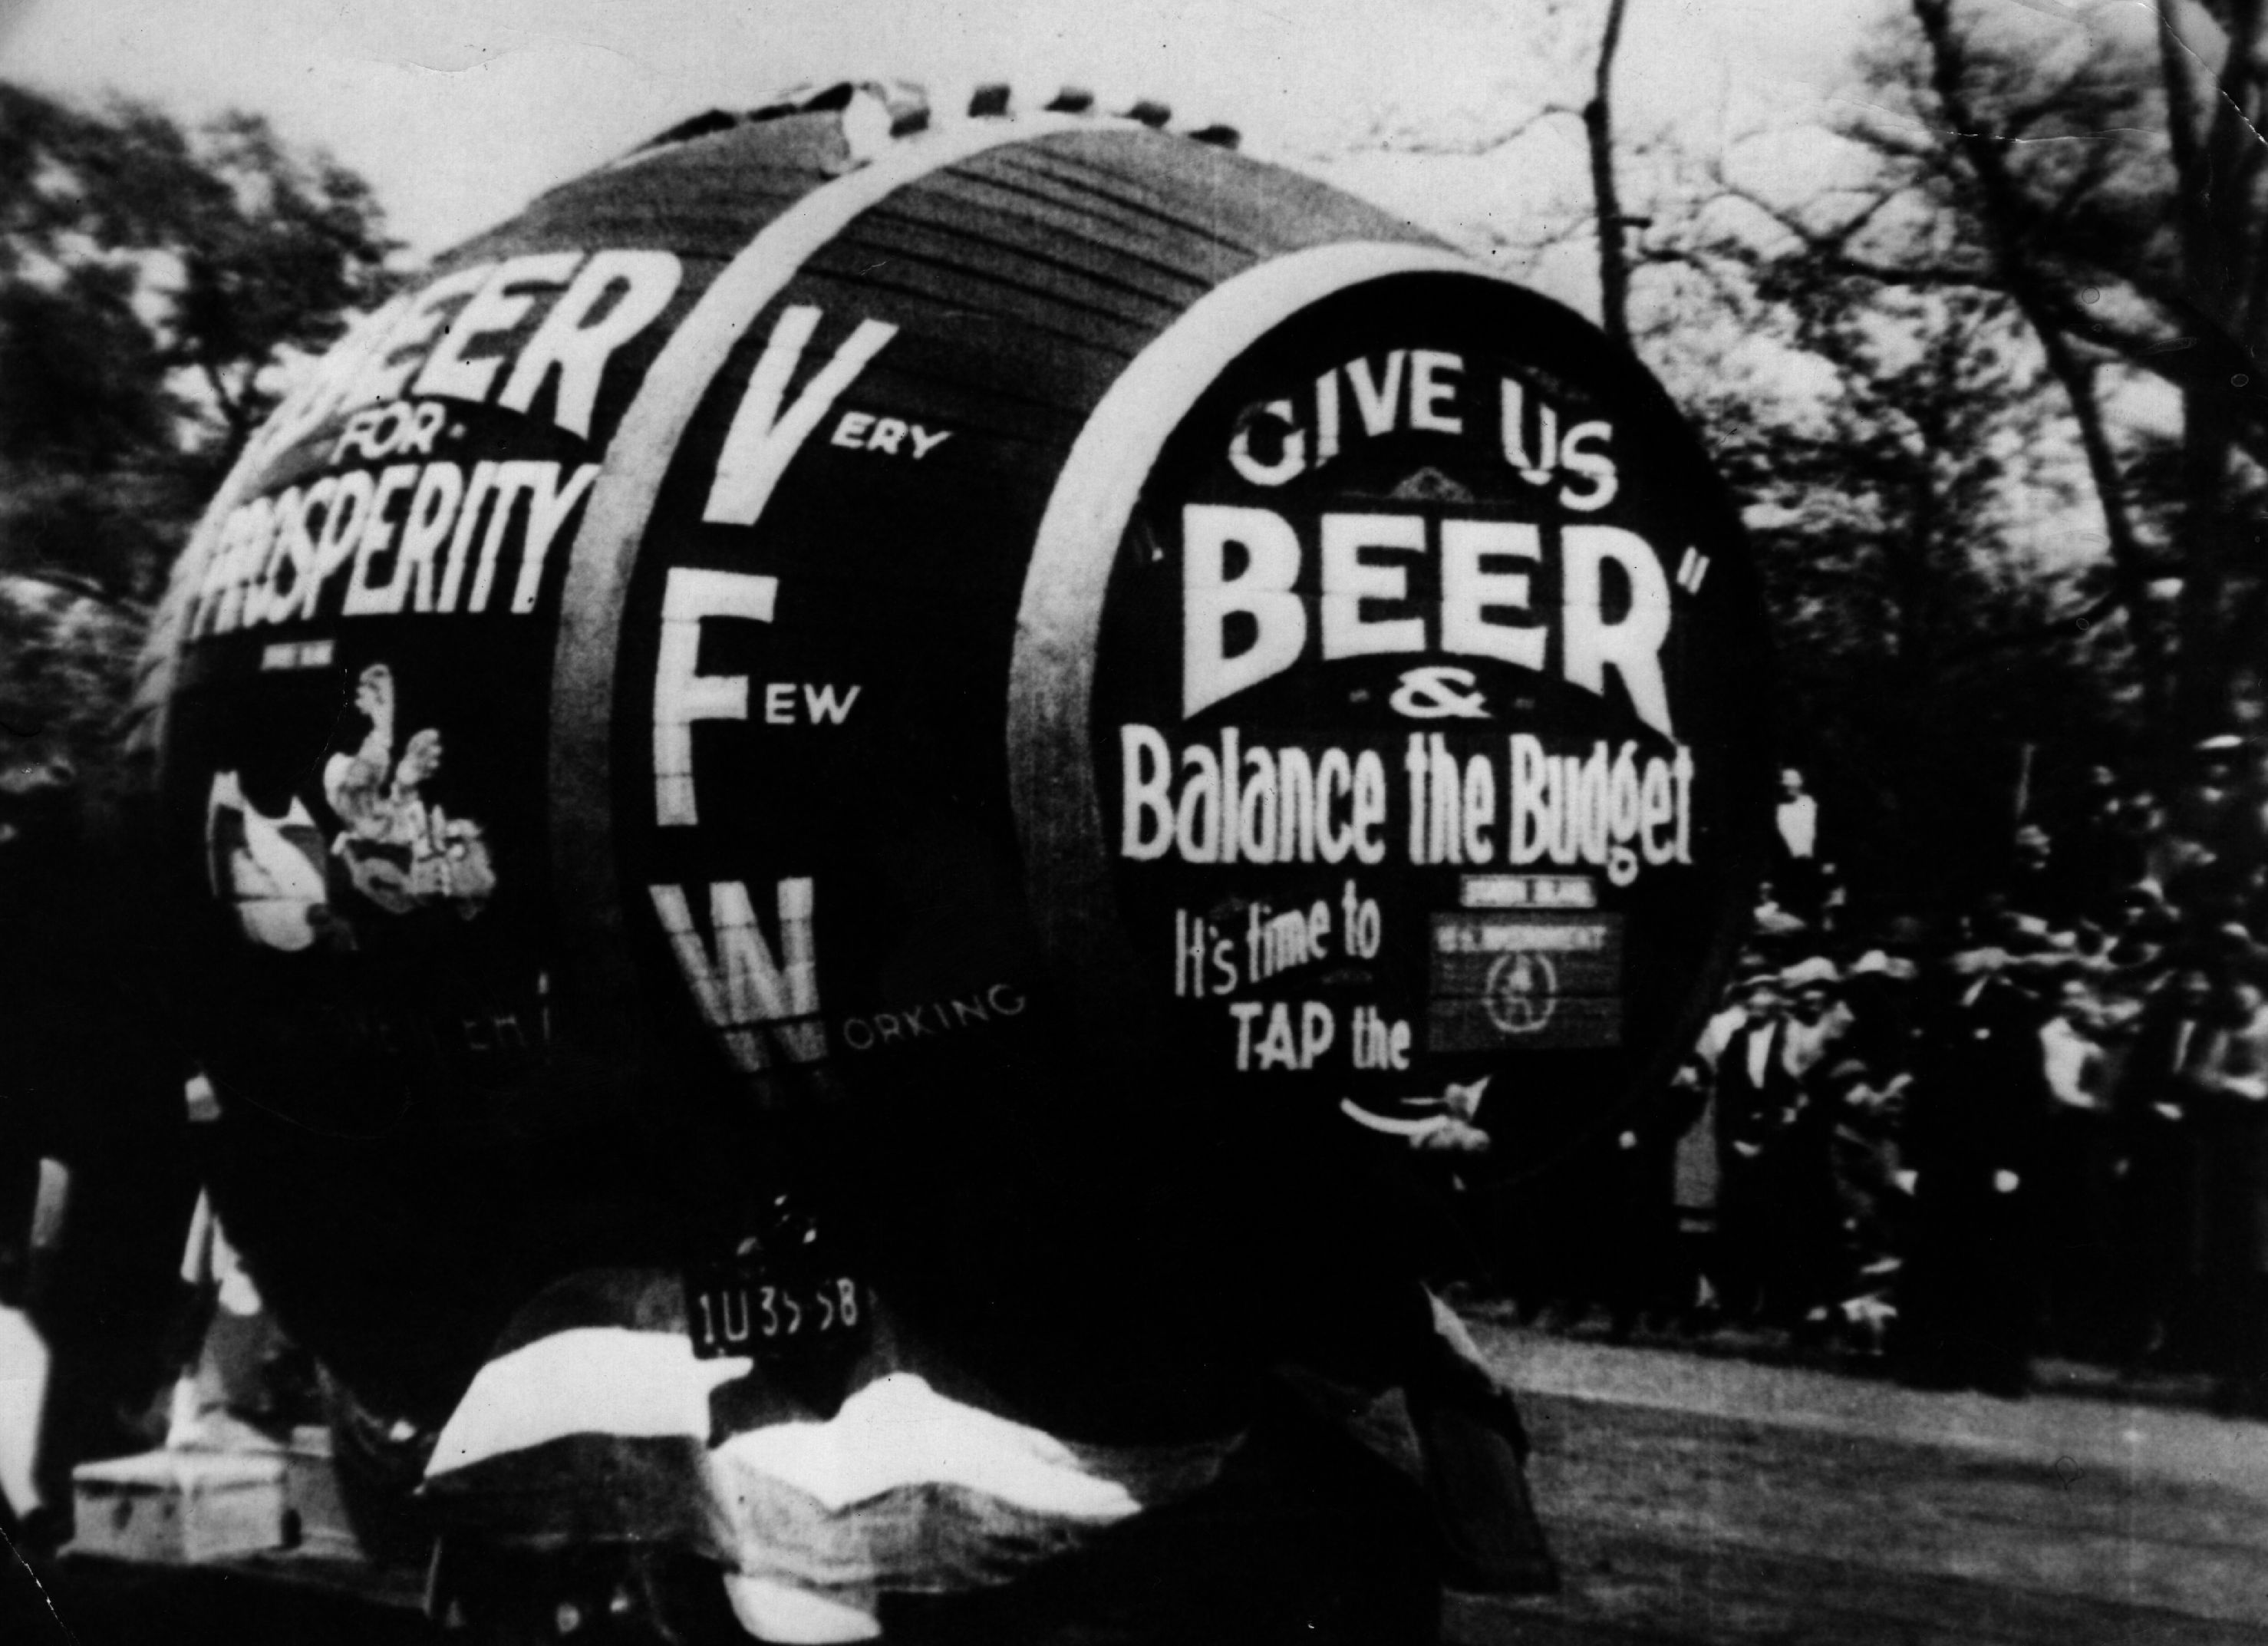 The History of Prohibition in the United States